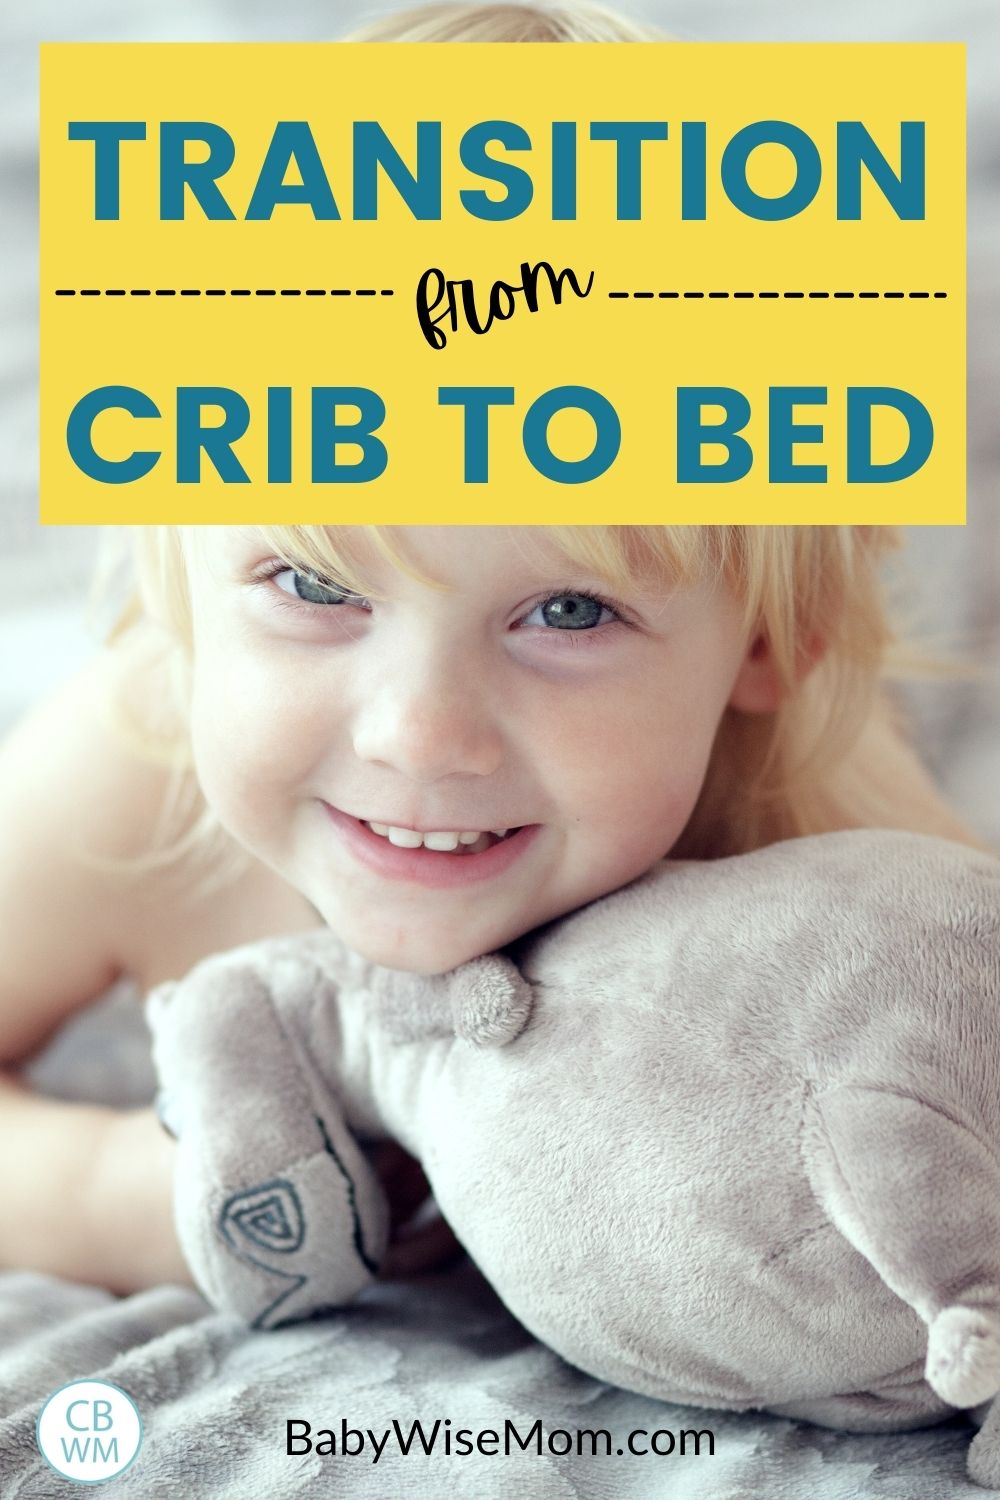 Transition from crib to bed